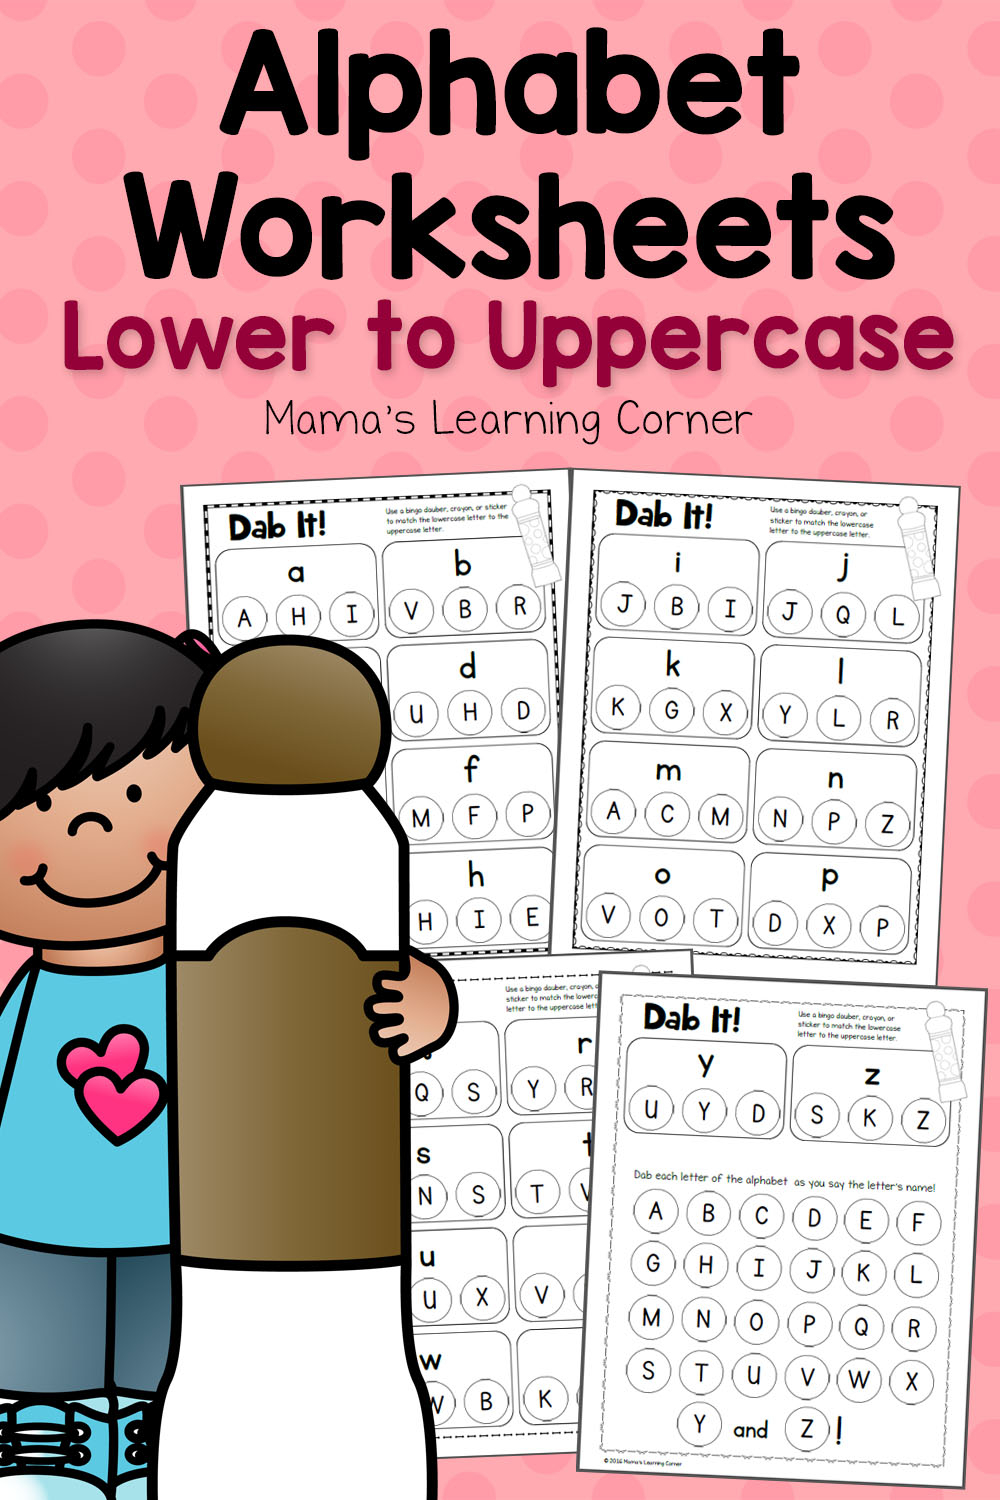 Dab It! Alphabet Worksheets - Match Lower And Uppercase throughout Alphabet Dab Worksheets